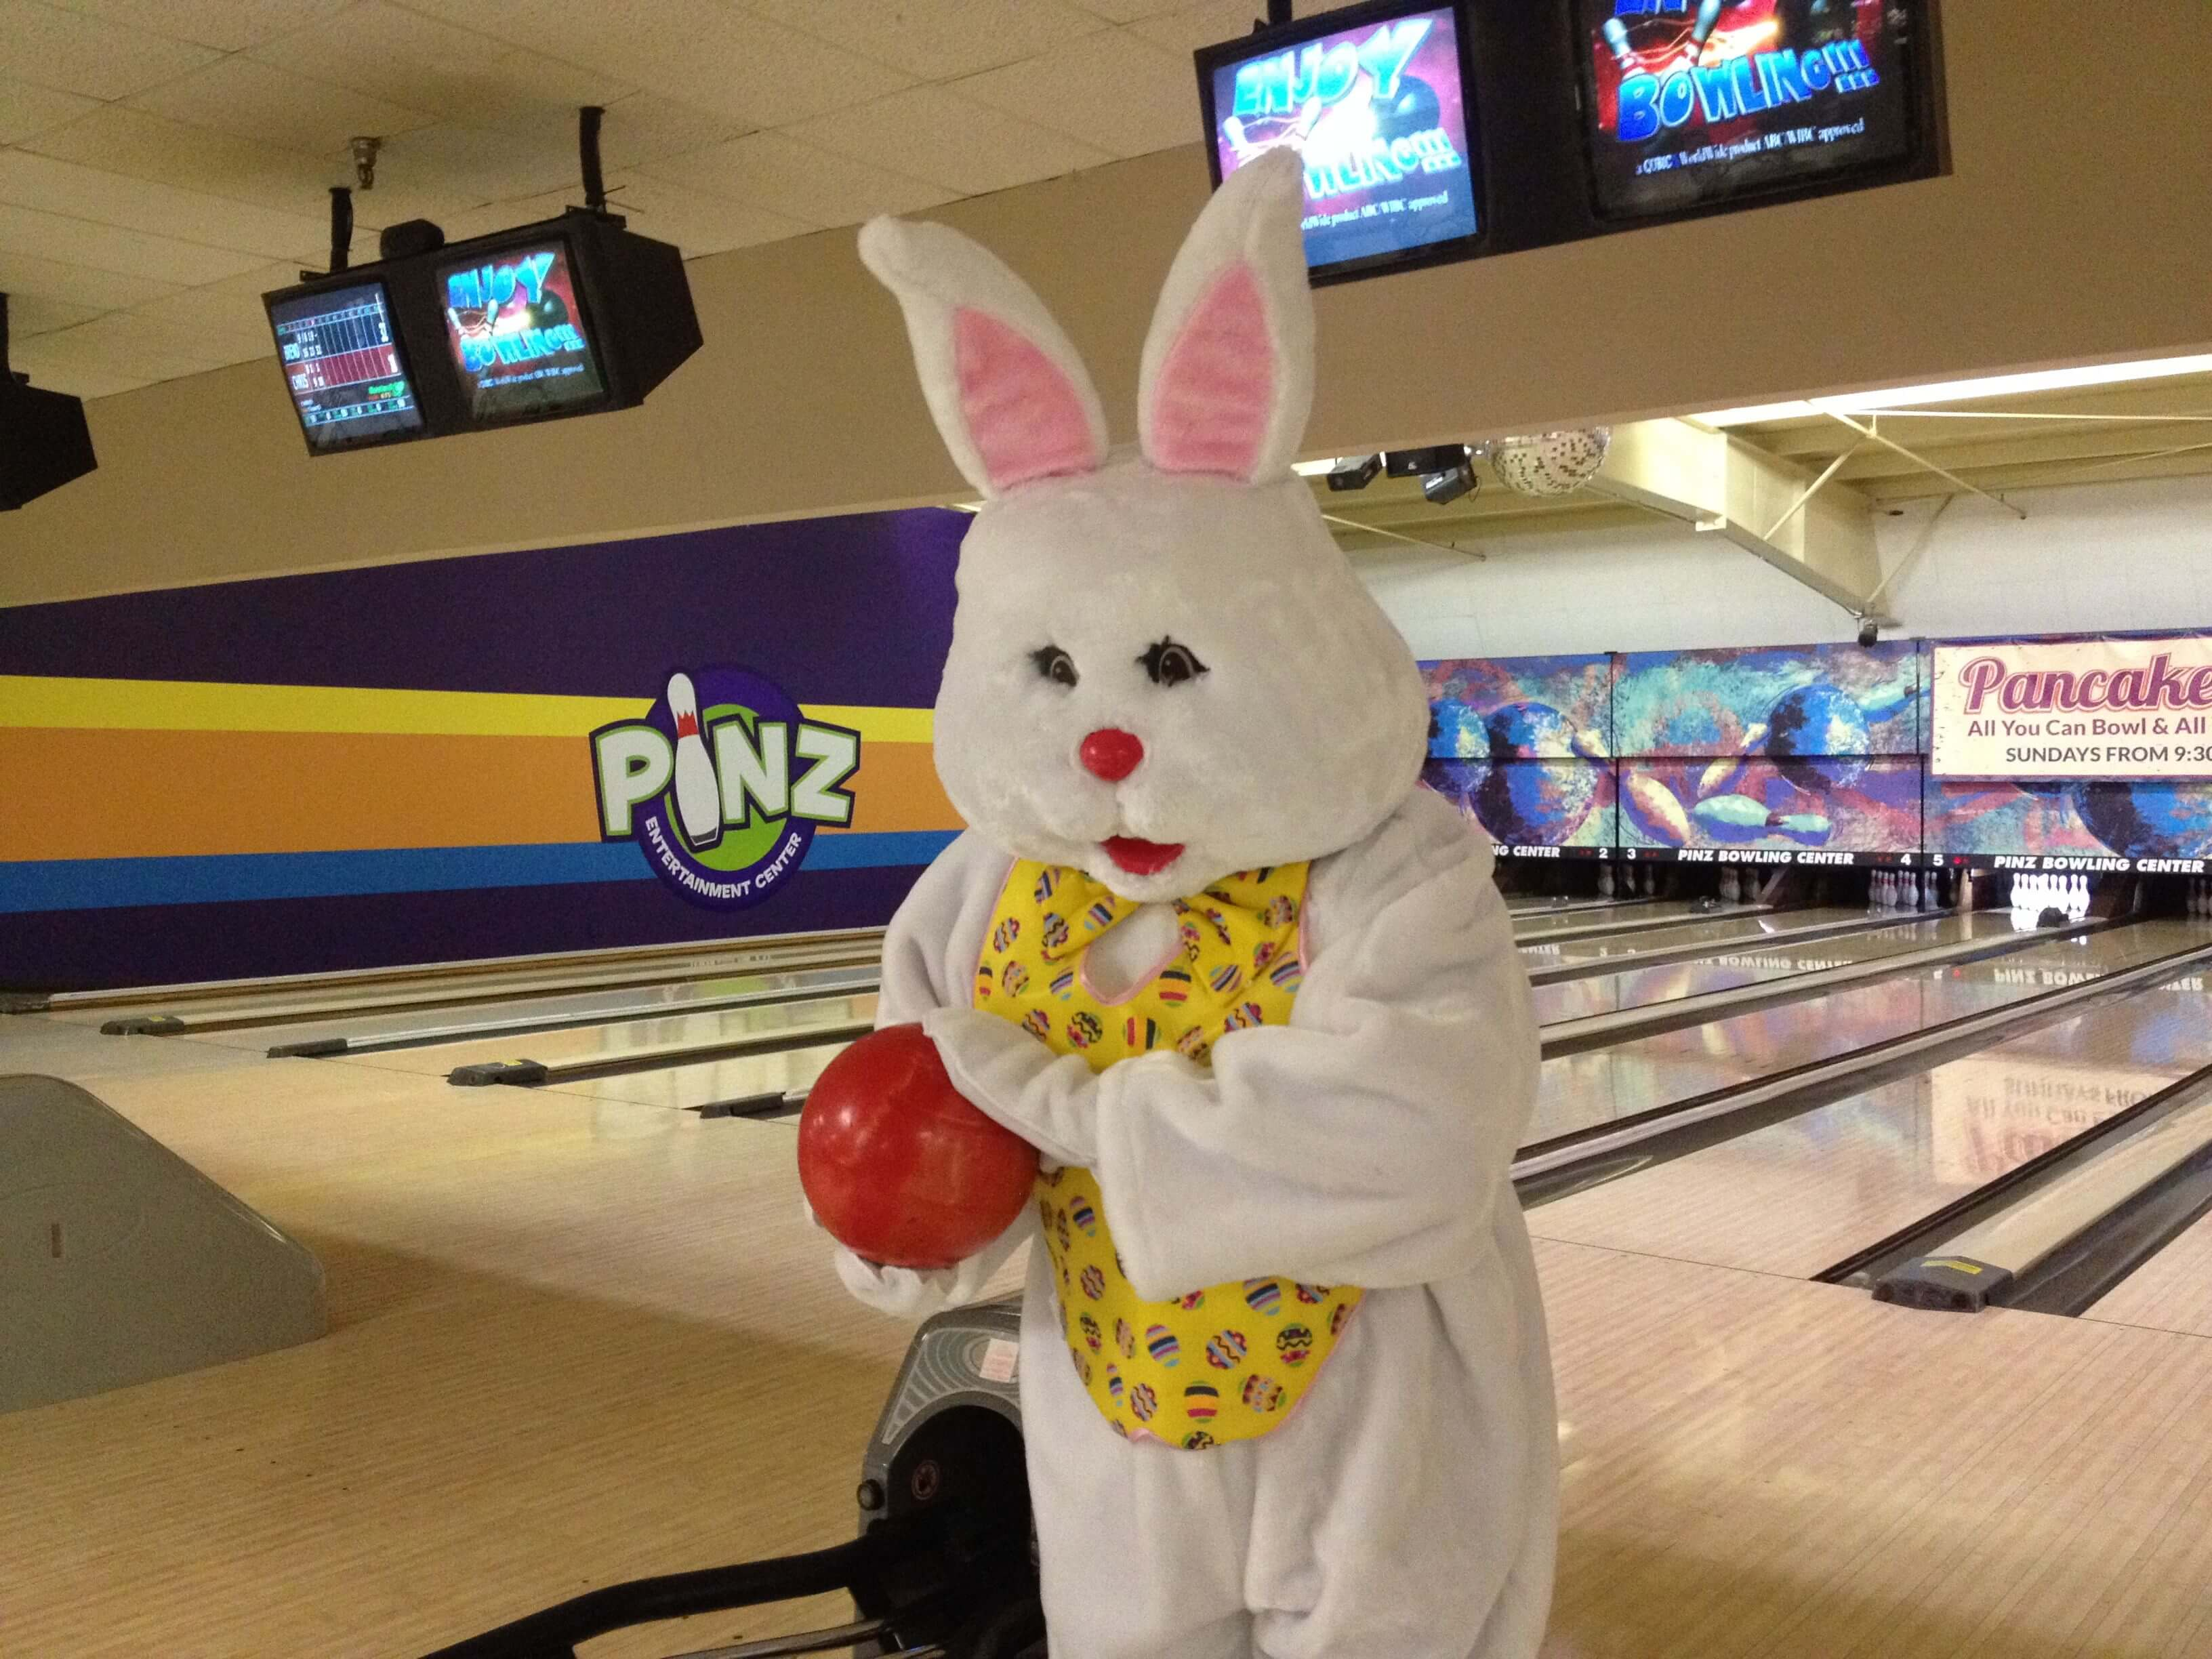 The Easter Bunny is Hopping to Pinz!